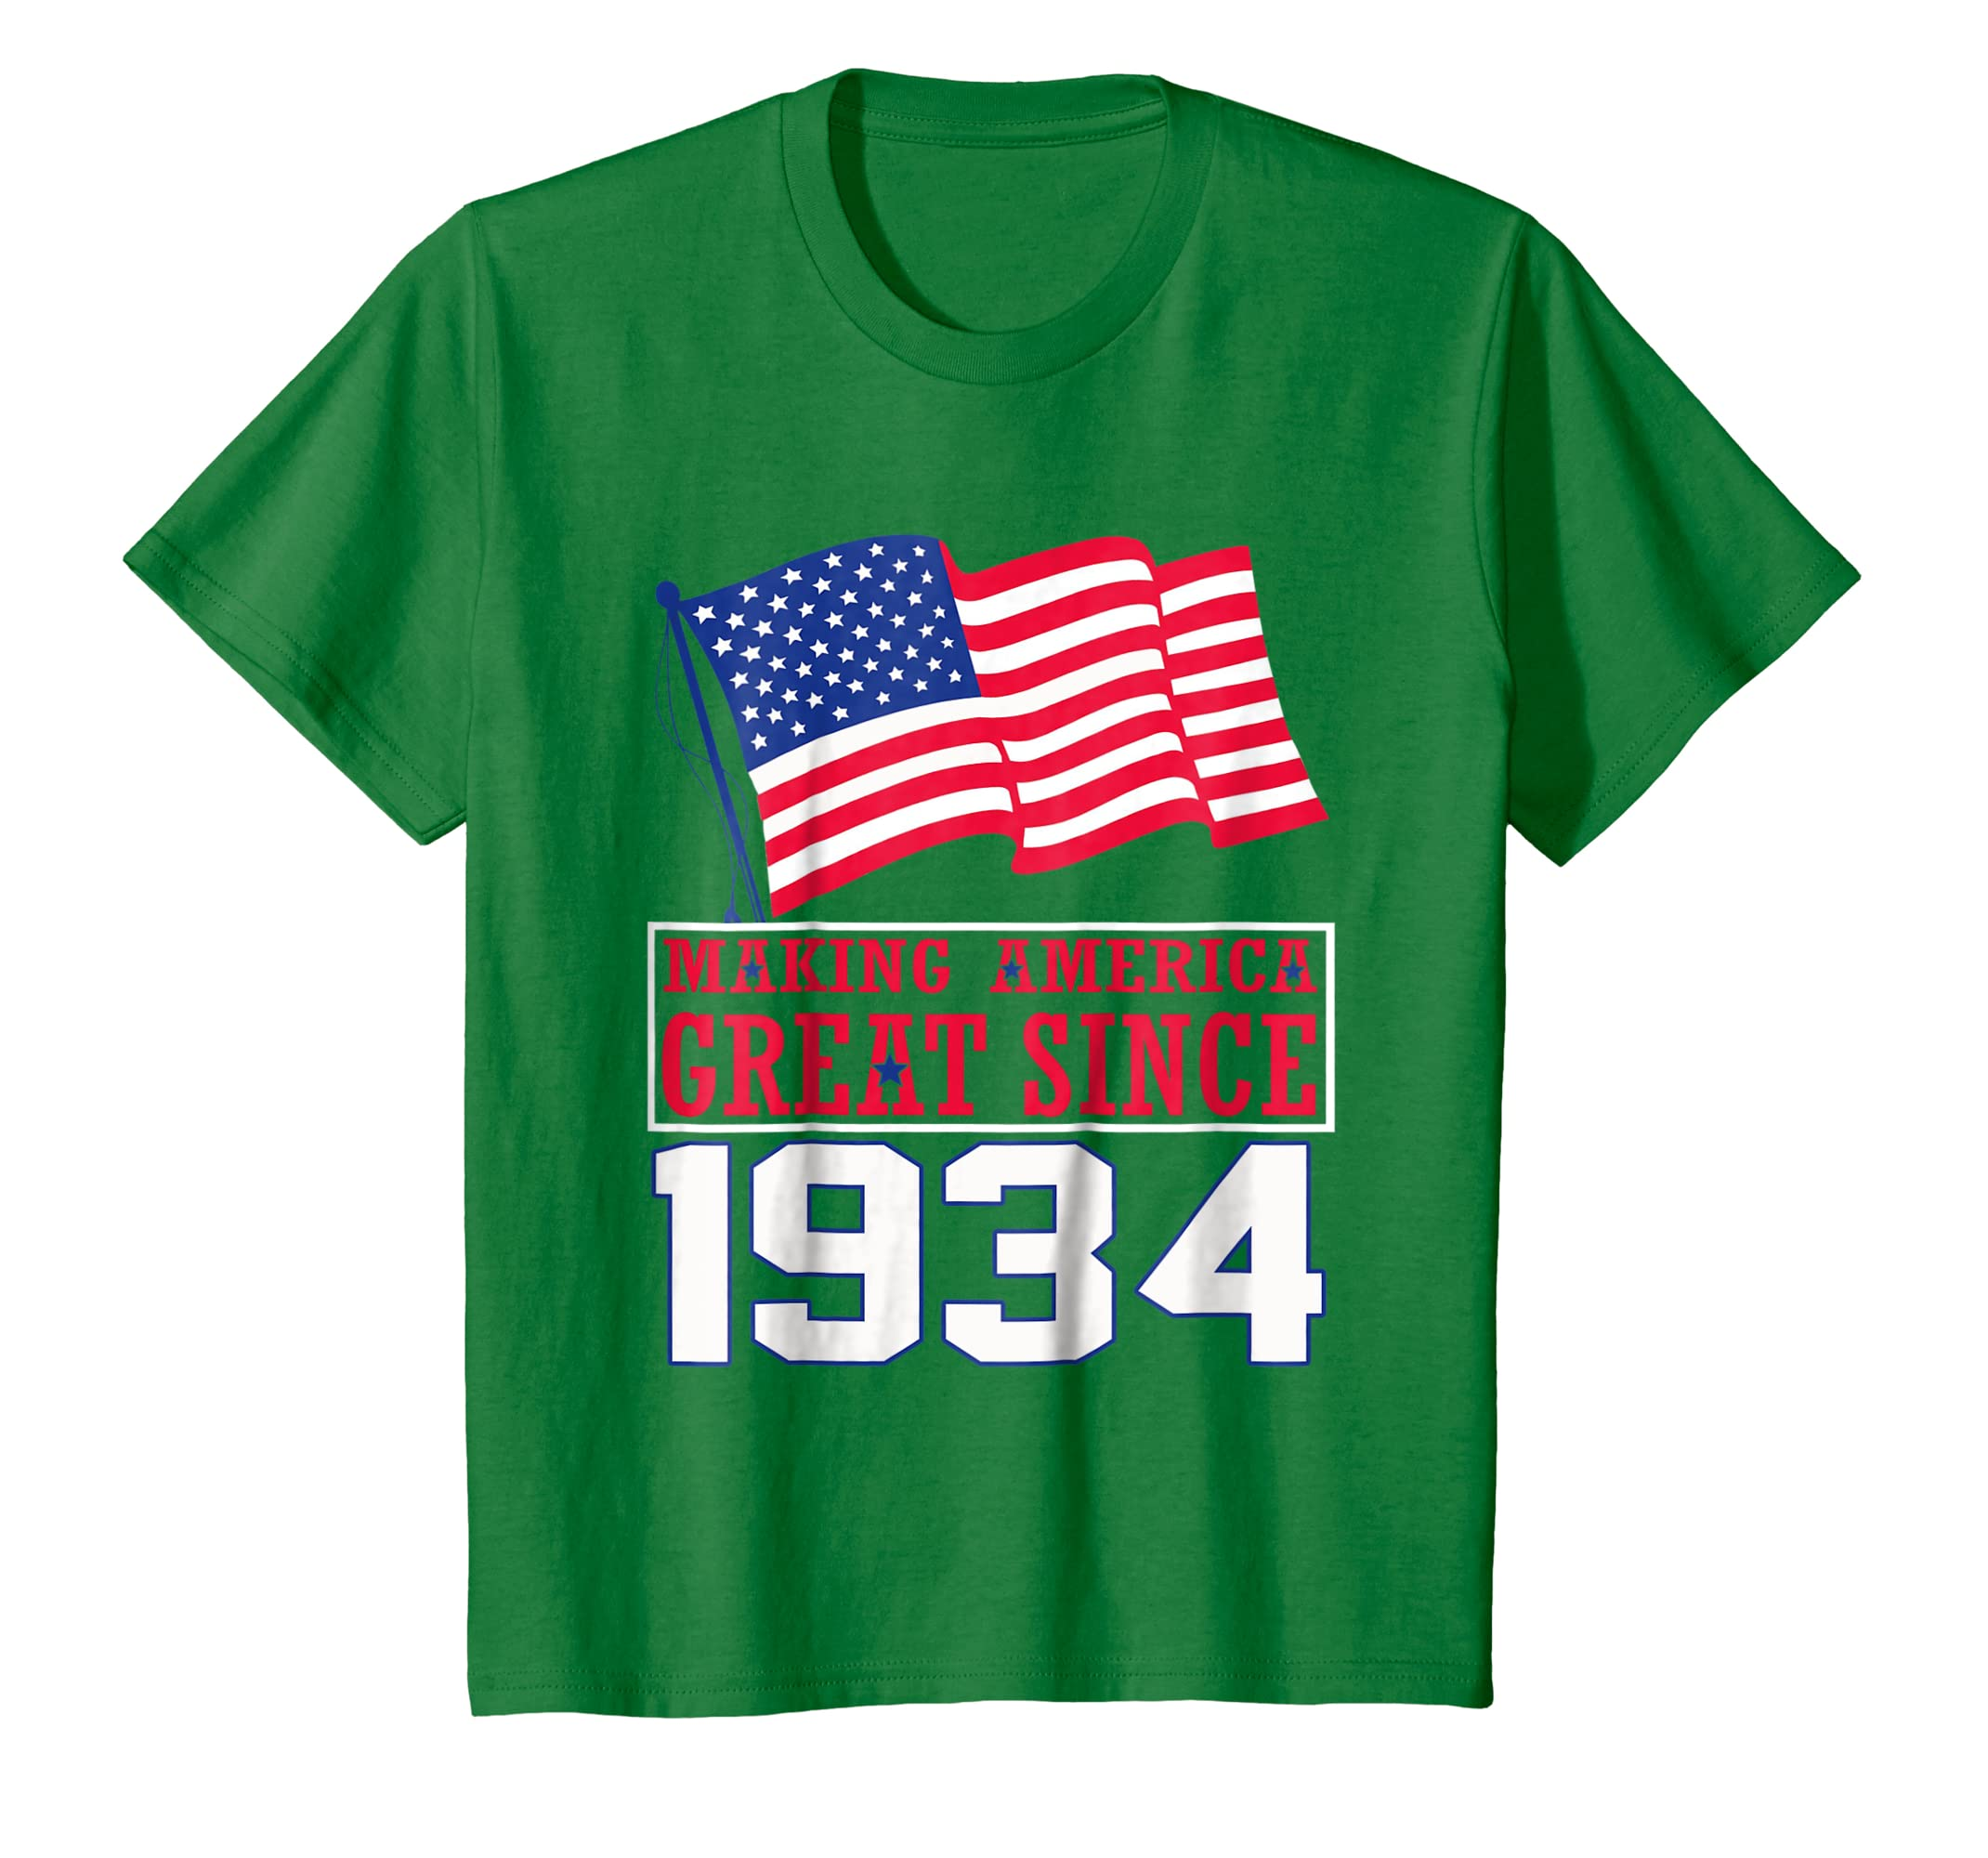 84th Making America Great Since 1934 T Shirt